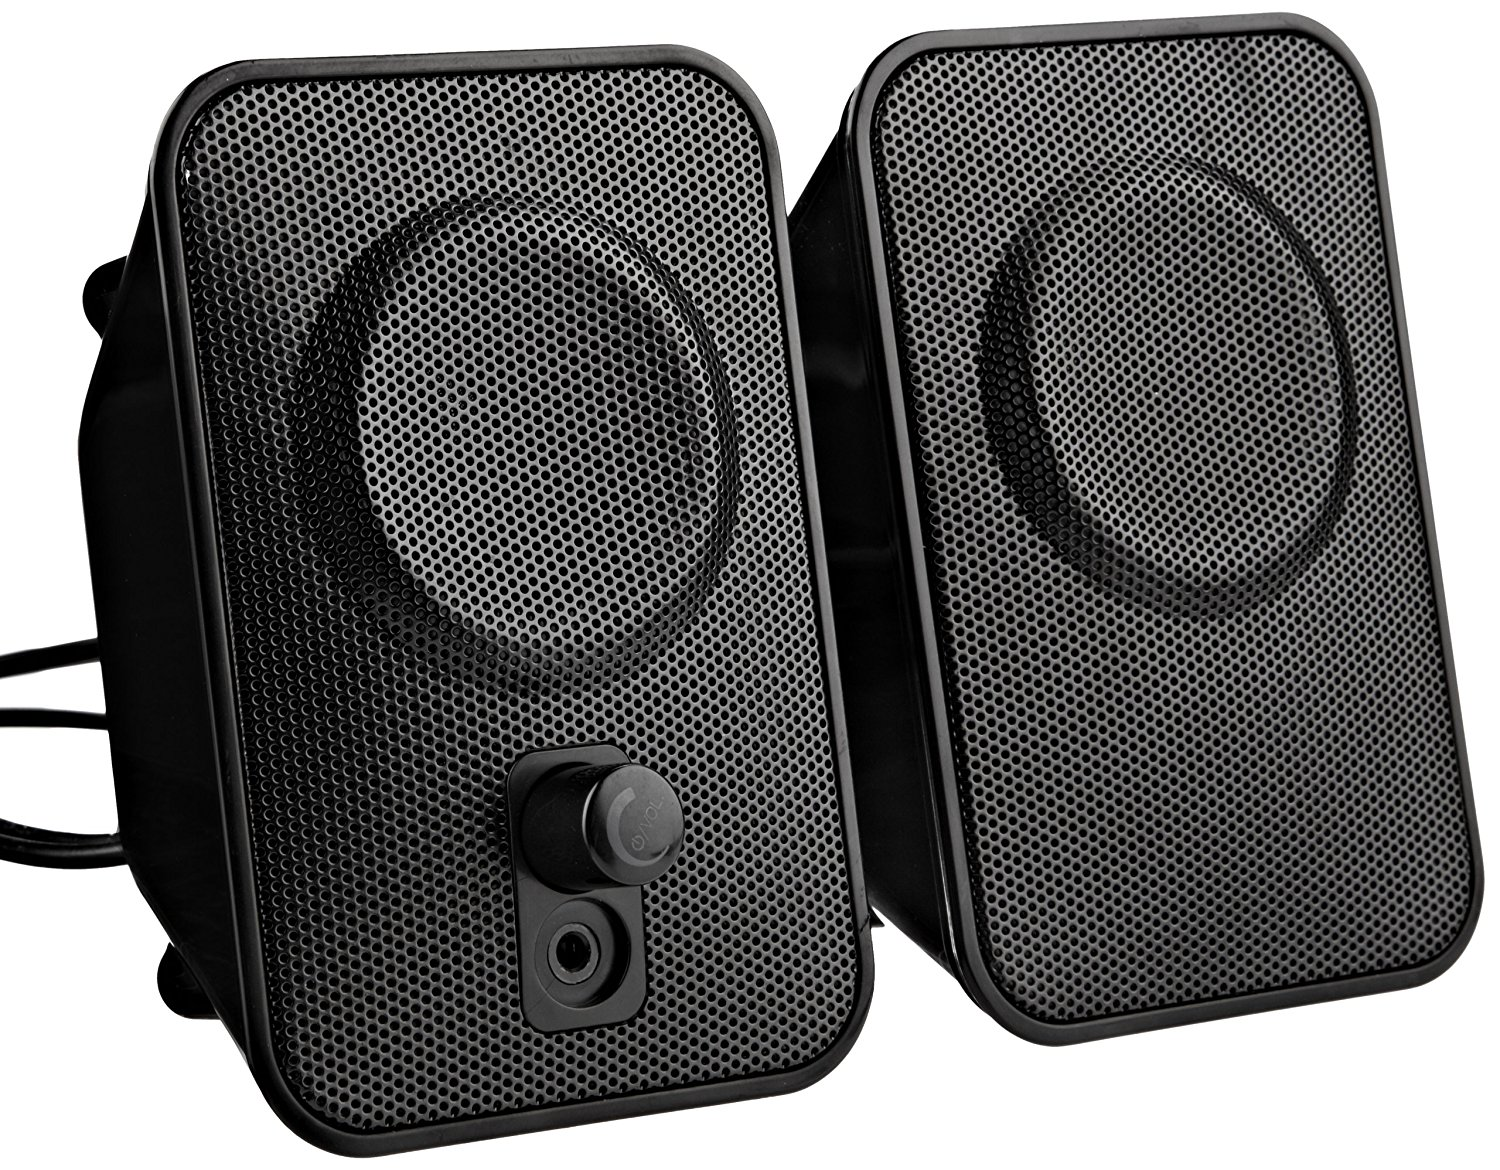 A150 Multi-Media Speakers